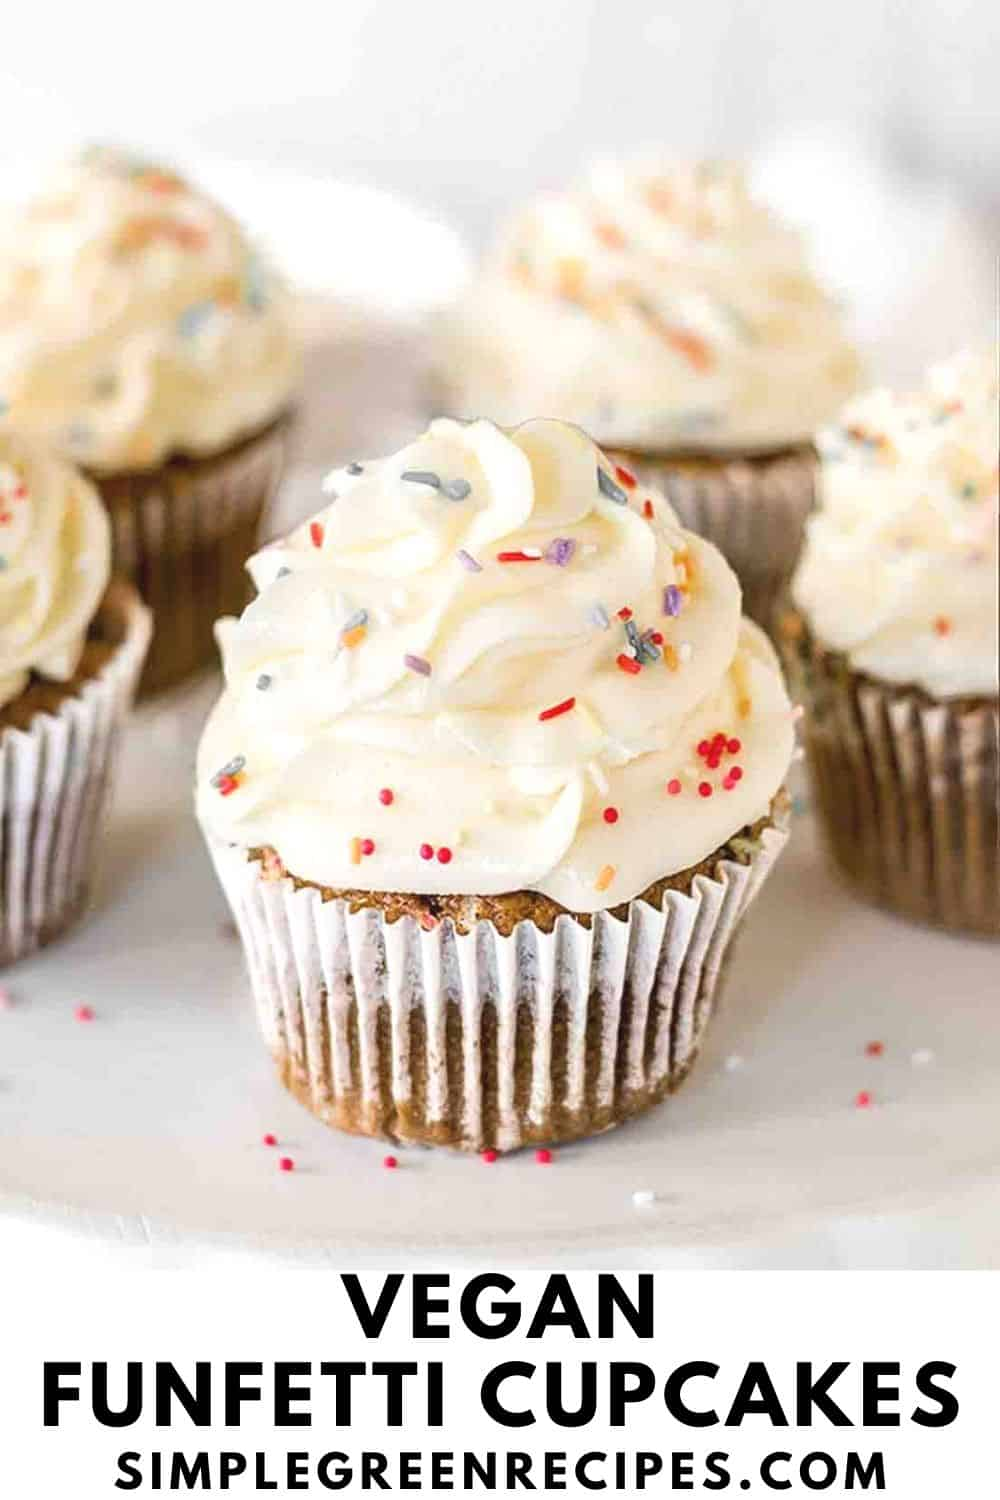 Cupcakes frosted with vanilla buttercream and topped with colourful sprinkles against a white surface